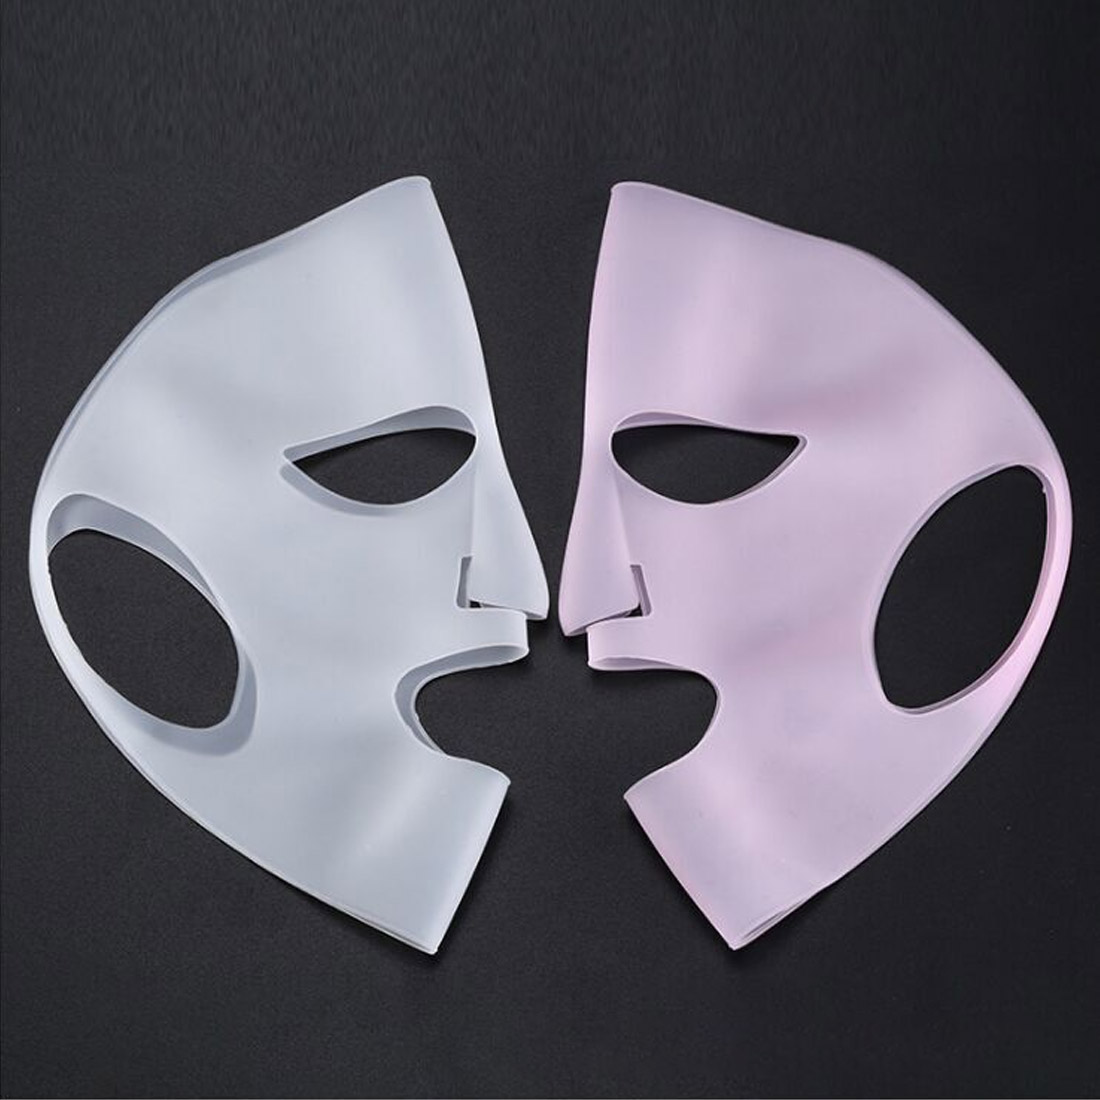 Reusable Grace Face Mask Cover Holder For Face Mask Steam Prevents Evaporation Moisturizing Control Blackhead Remover Reusable Grace Face Mask Cover Holder For Face Mask Steam Prevents Evaporation Moisturizing Control Blackhead Remover